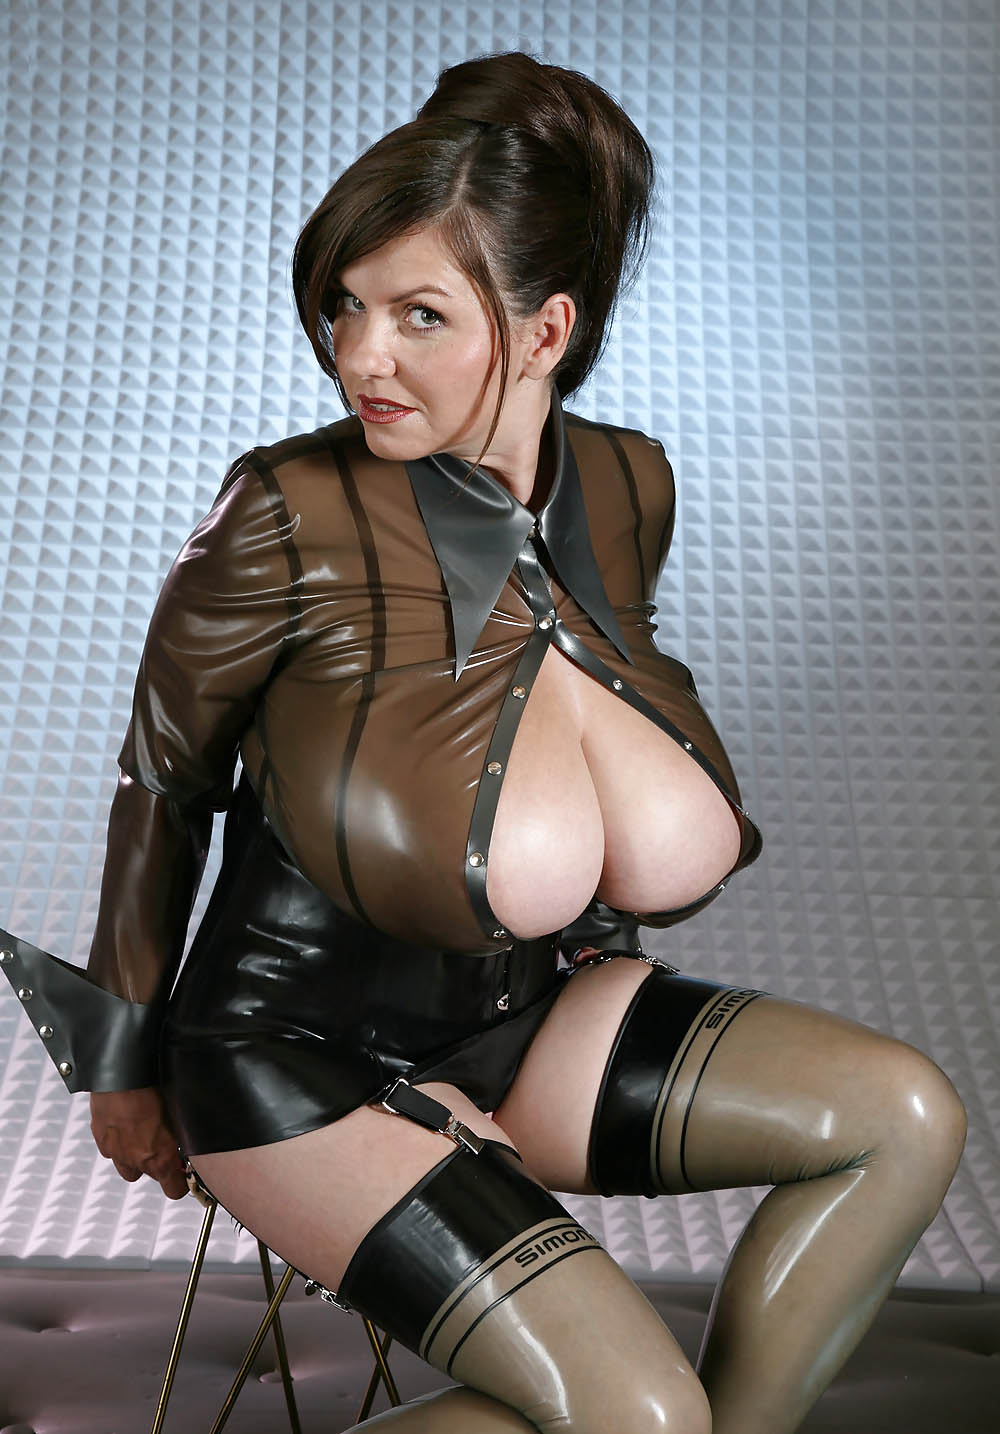 Naked latex full large hd pic cartoon clips